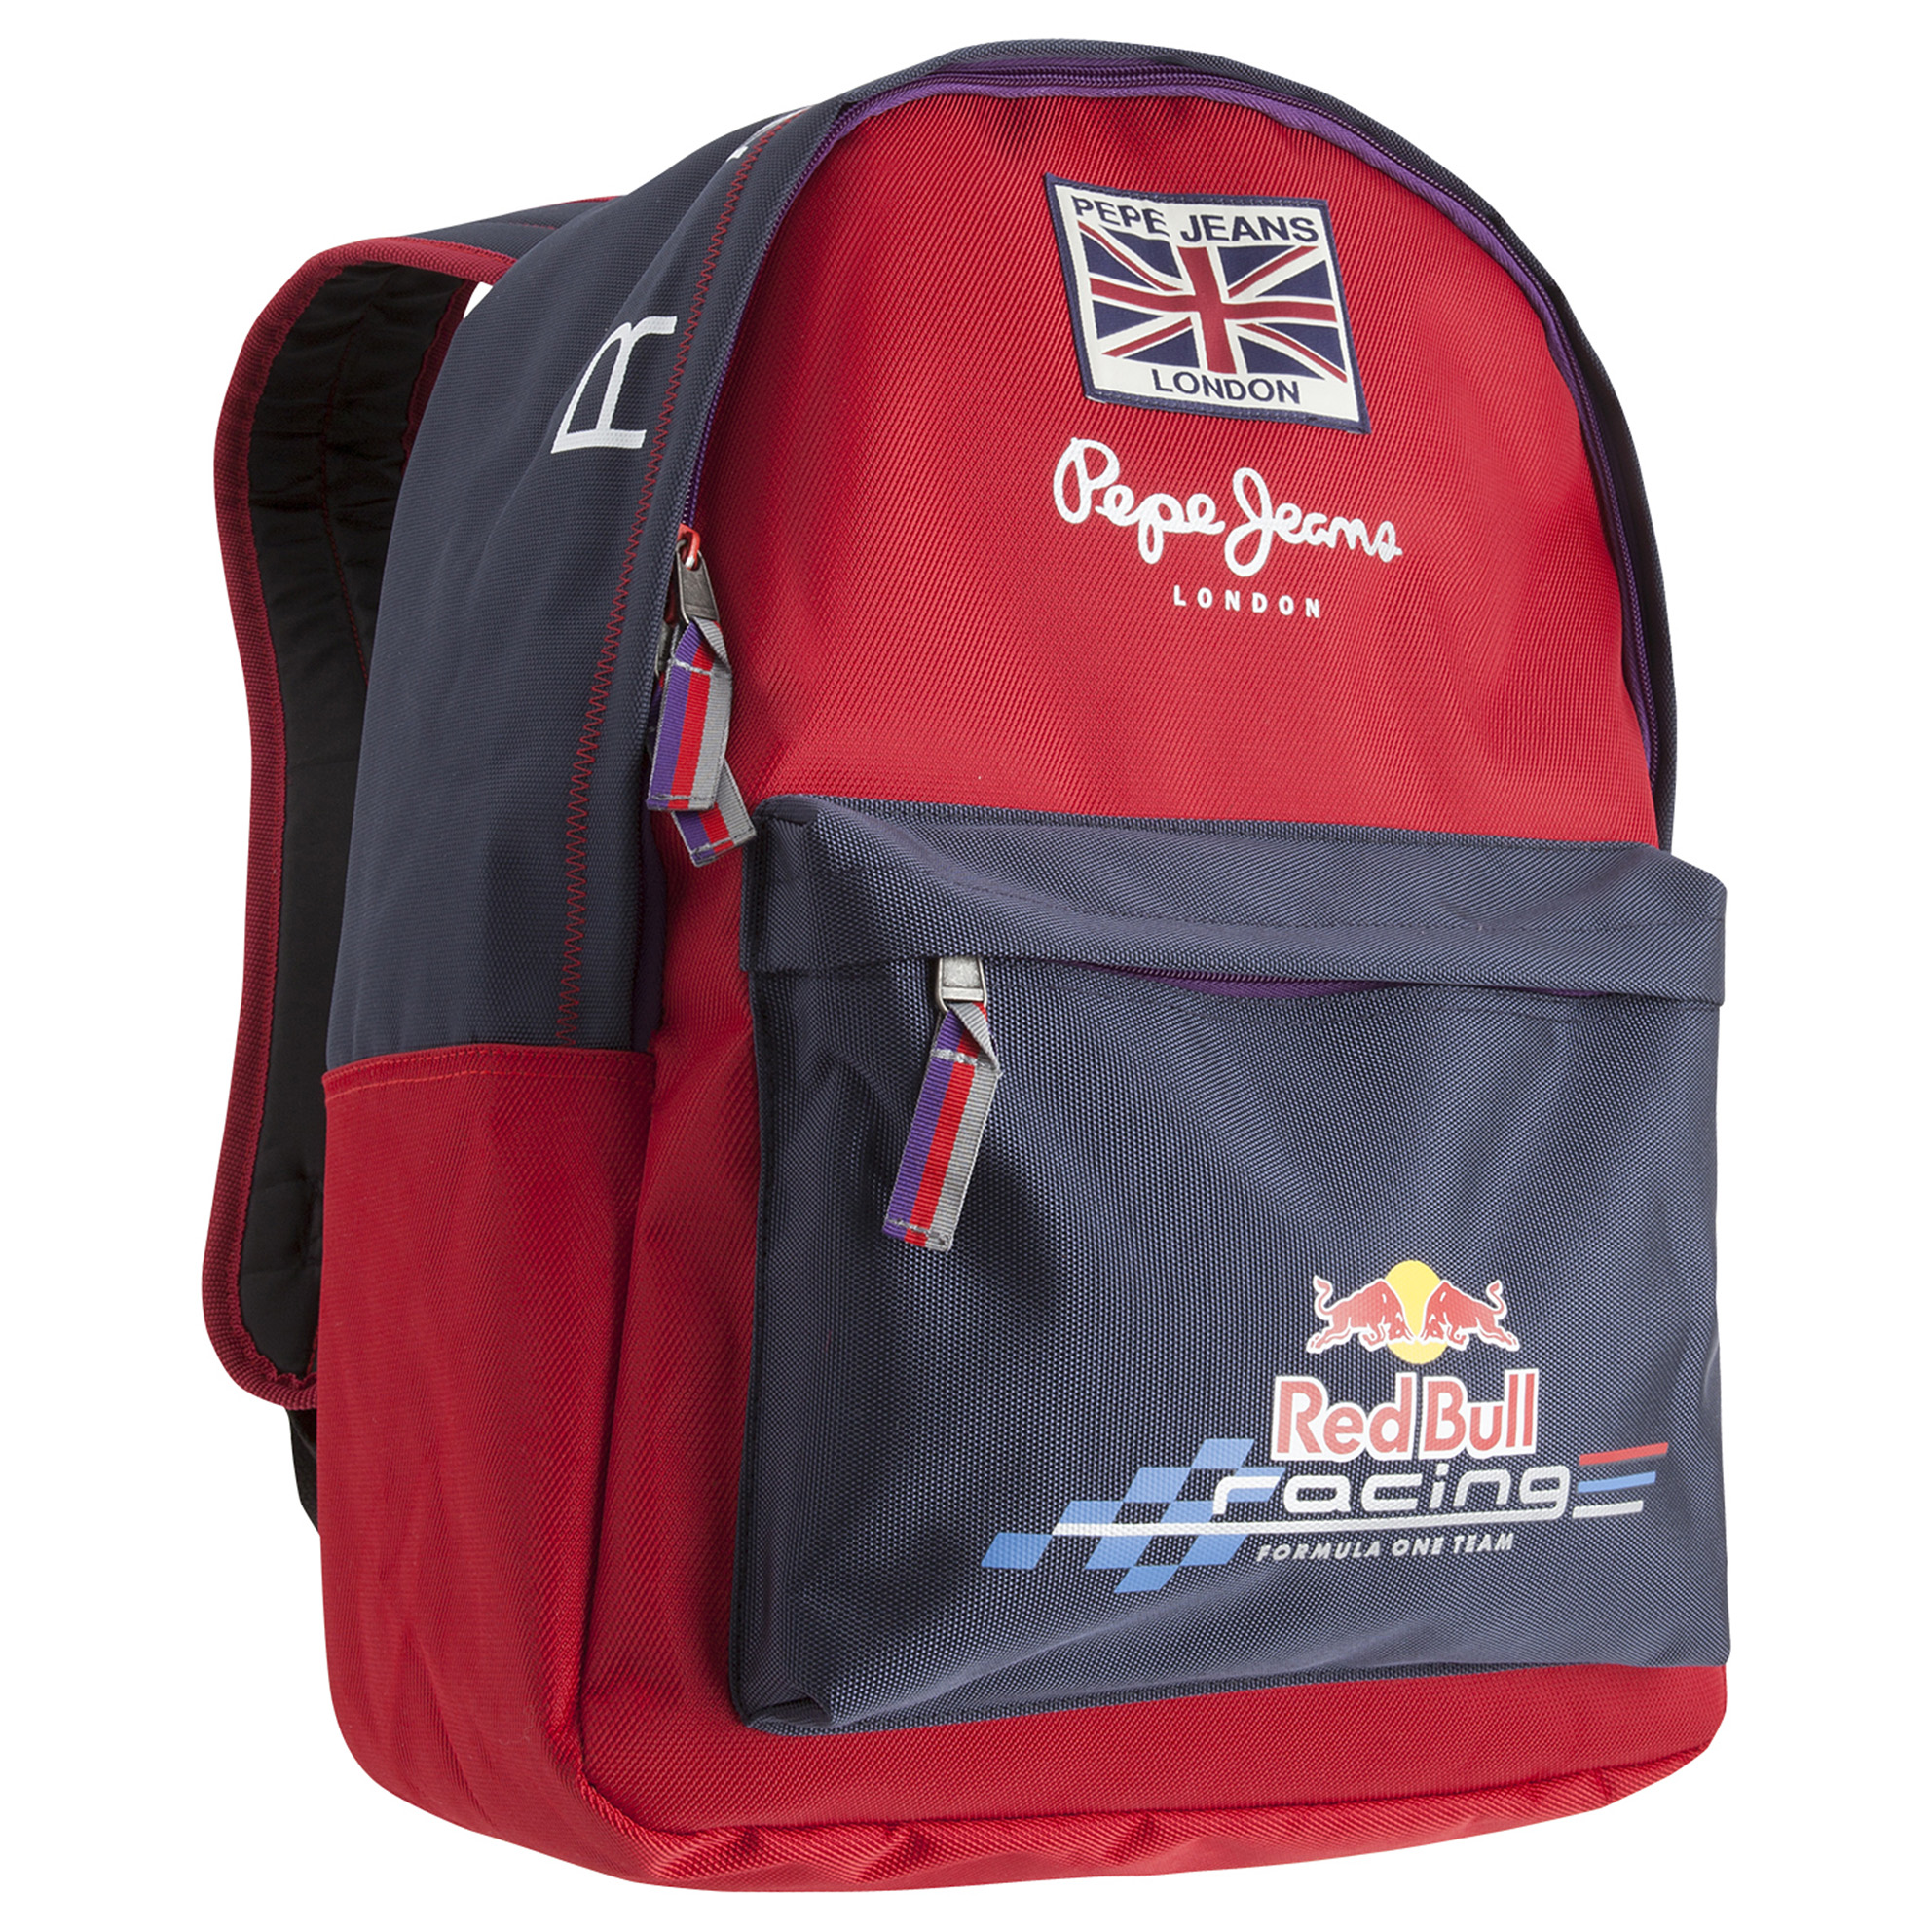 Infiniti Red Bull Racing by Pepe Jeans Score Backpack